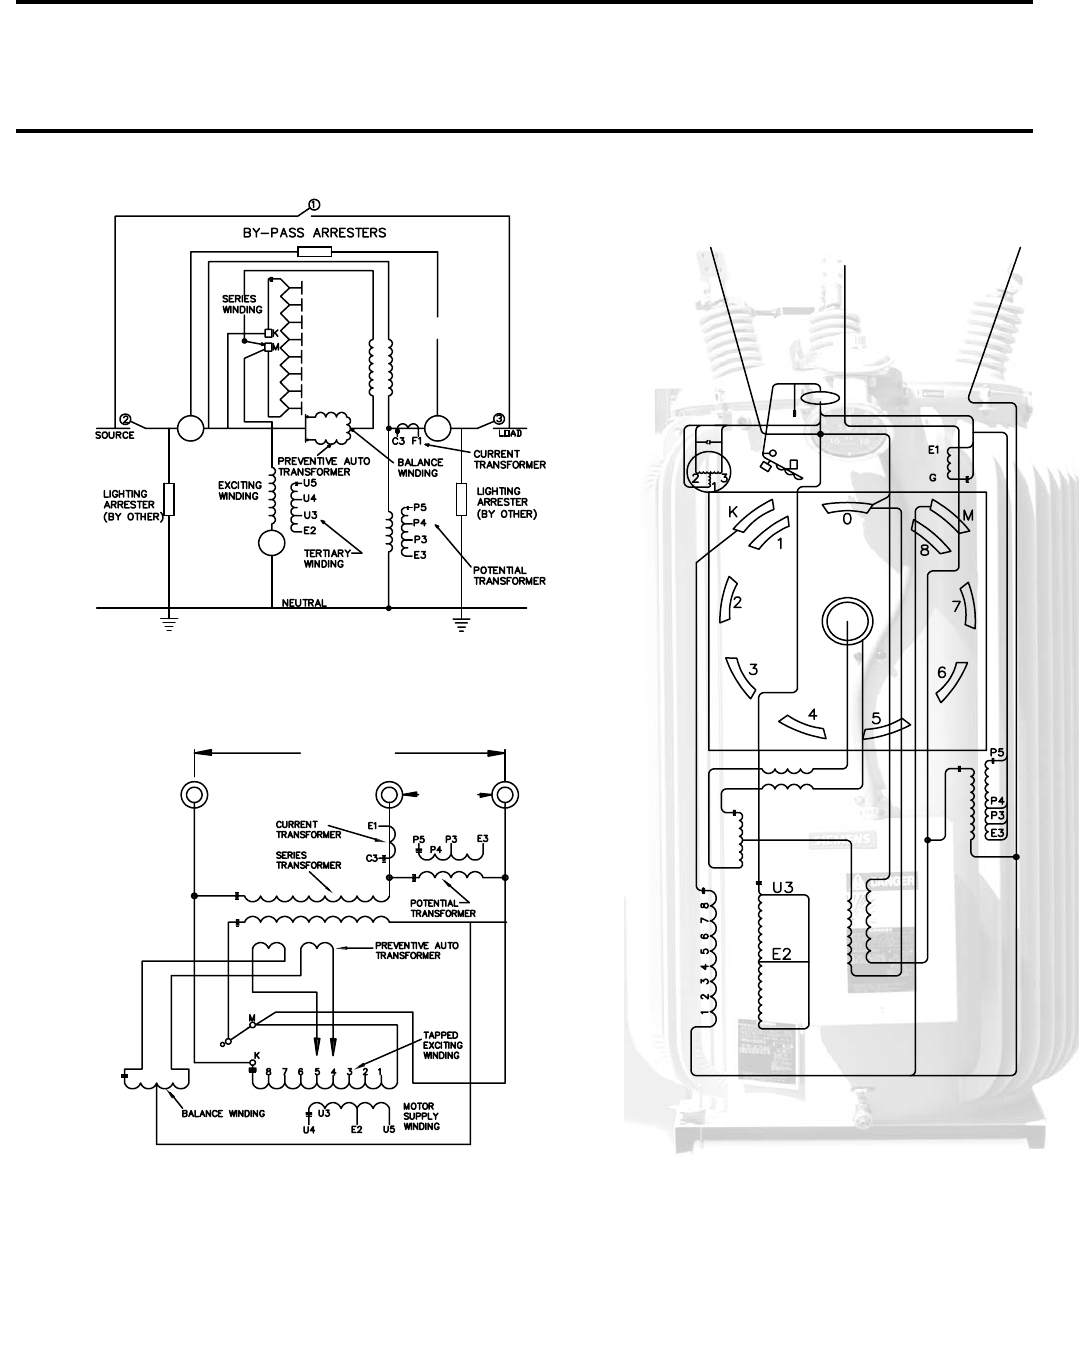 Wiring Diagram For Siemens Thermostat : Page of siemens thermostat user guide